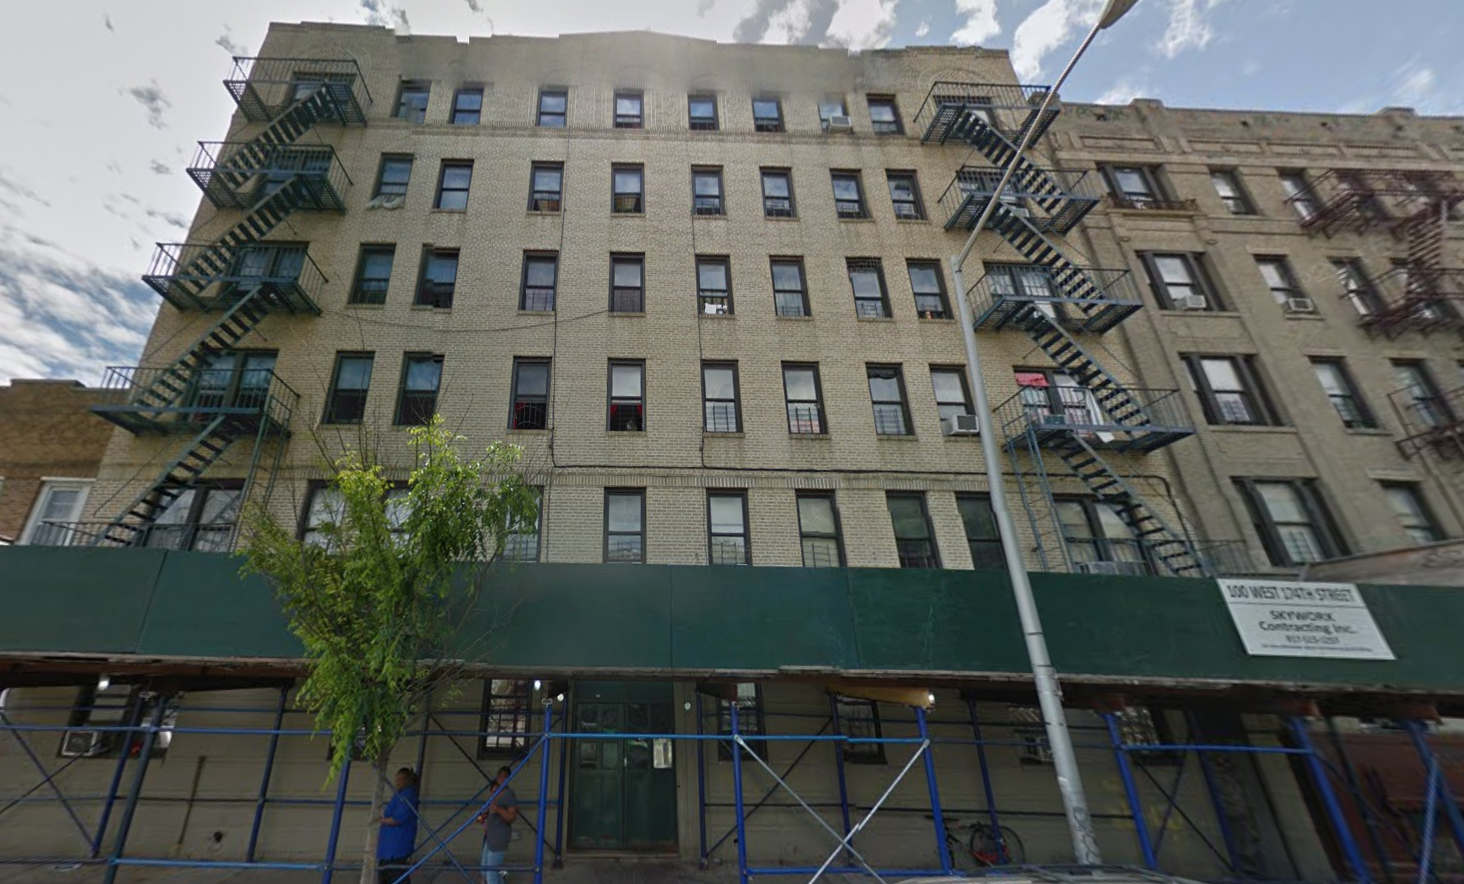 3 Bedroom Apartments In The Bronx Lottery For 20 Bronx Apartments Open Until Sept 16